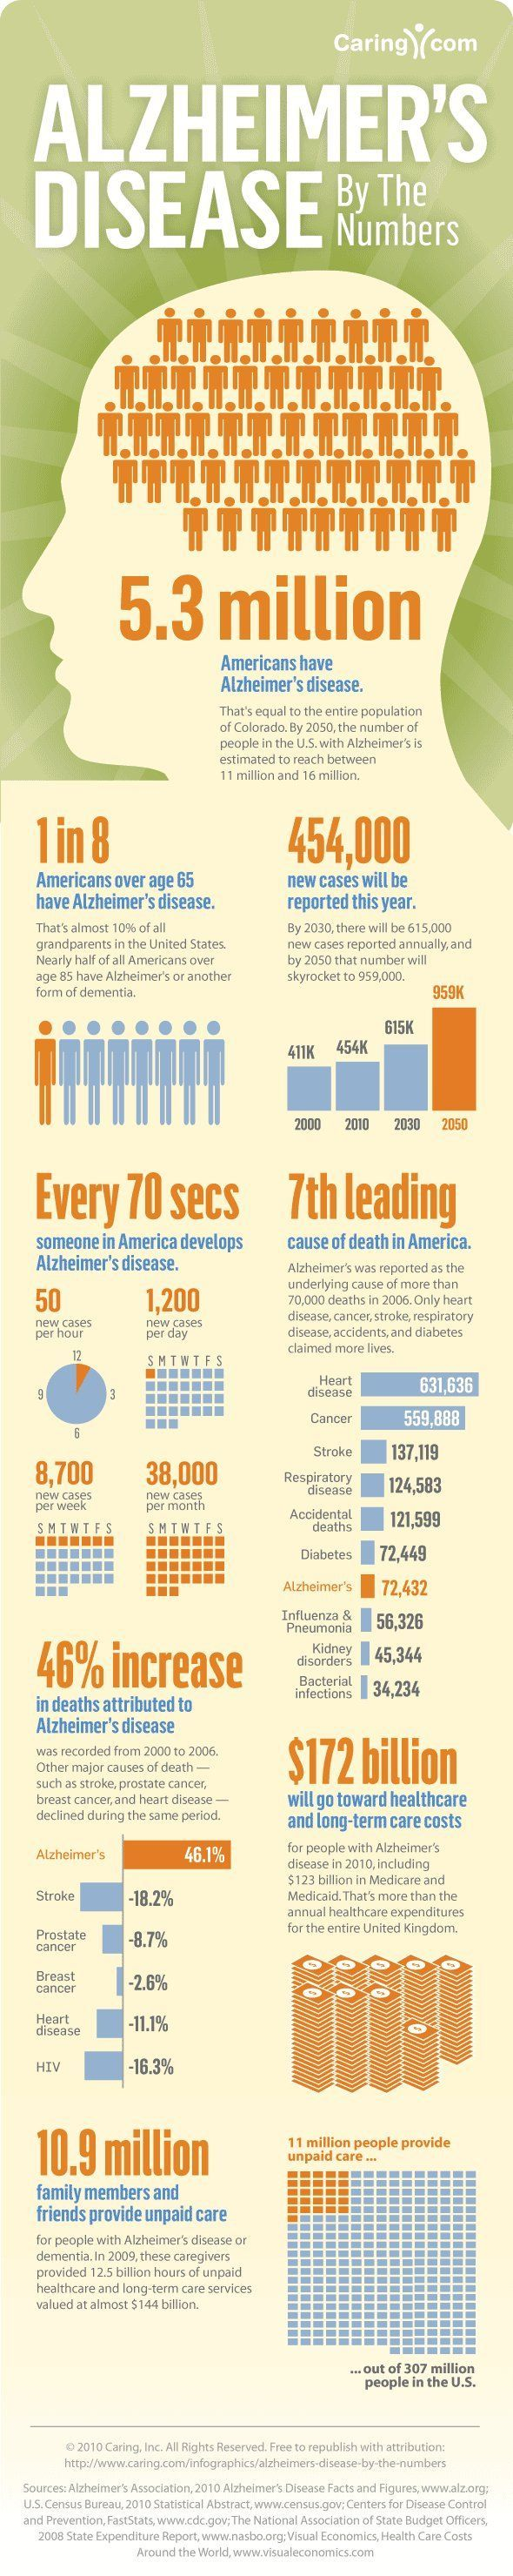 Medical infographic : Alzheimers Disease by the Numbers Infographic